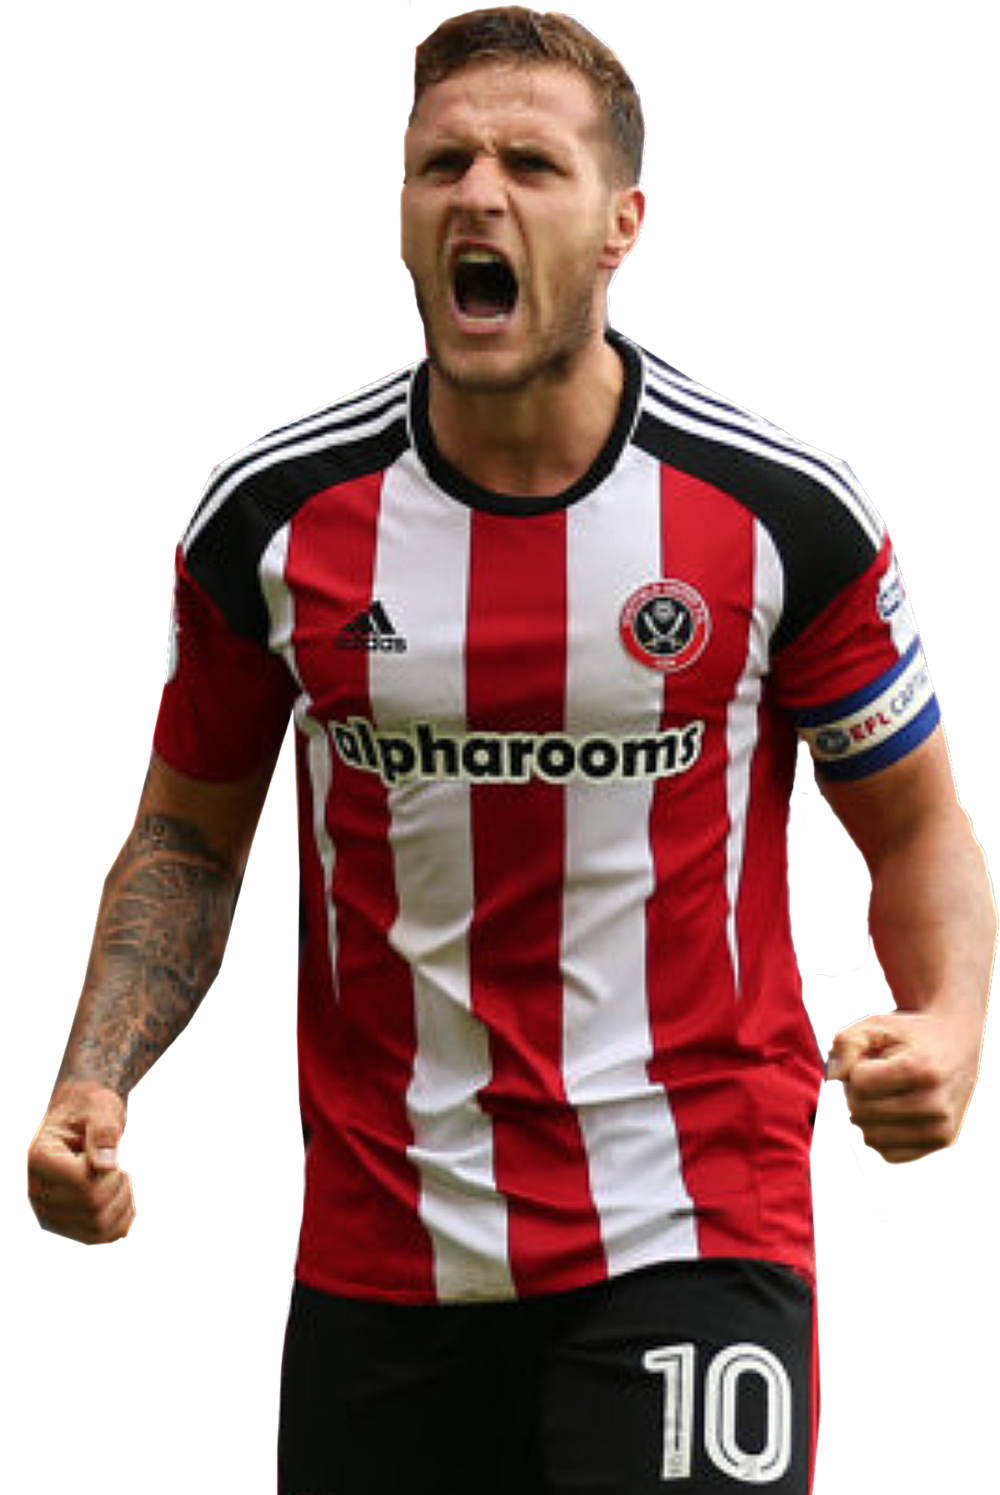 CAPTAIN FANTASTIC:  BILLY SHARP HAS NOW SCORED 201 CAREER LEAGUE GOALS.